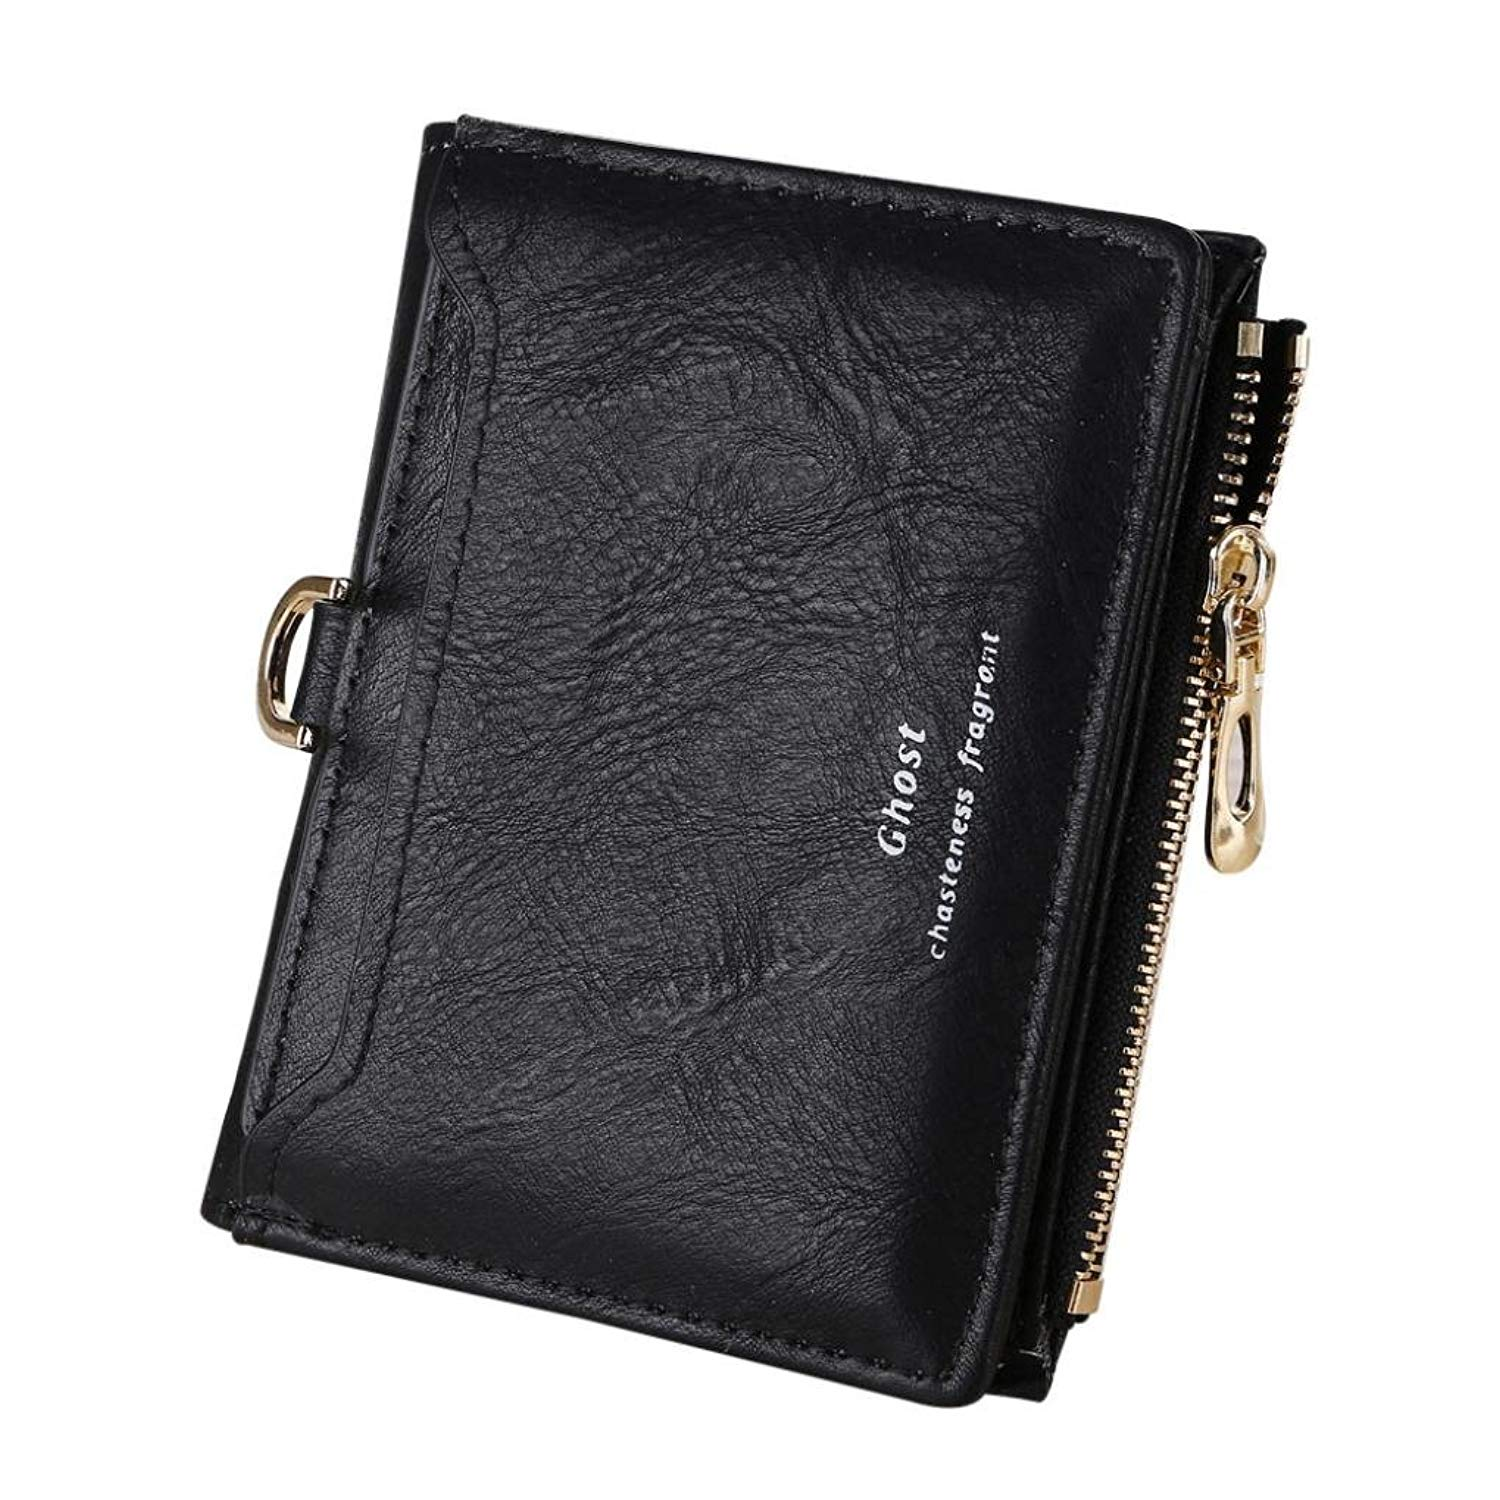 dcb1f59496691 Get Quotations · Hot Sale Coin Purse,AmyDong Women Simple Wallet Coin Purse  Card Holders Handbag Hasp Purse